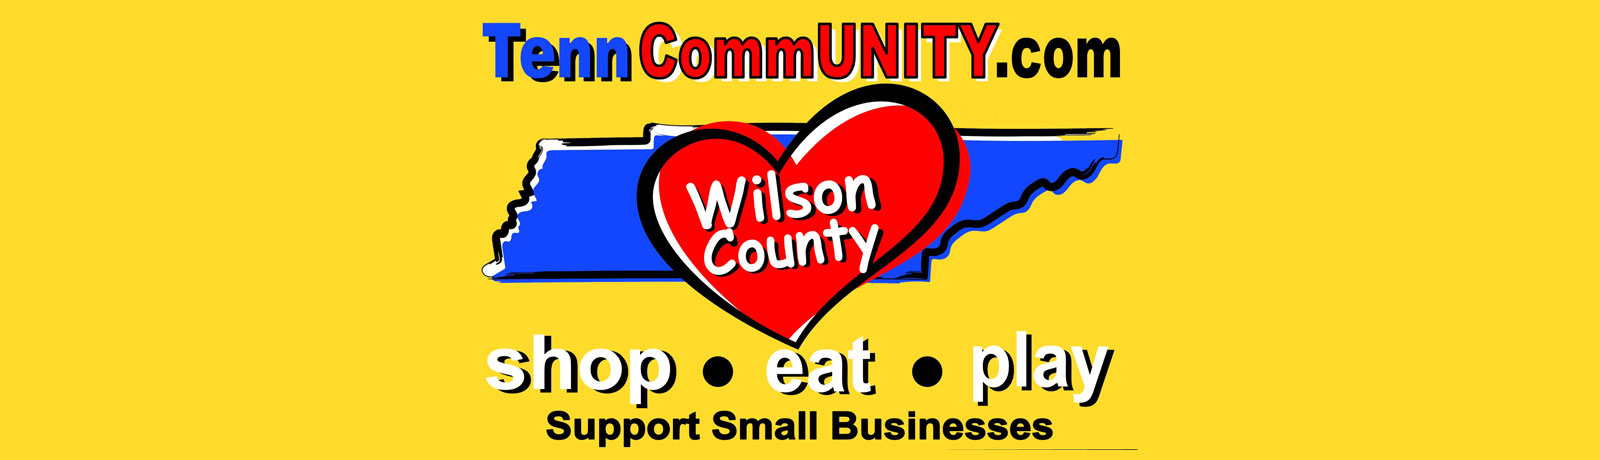 Special Edition Podcast: Wilson County Small Business Help - TennCommUNITY